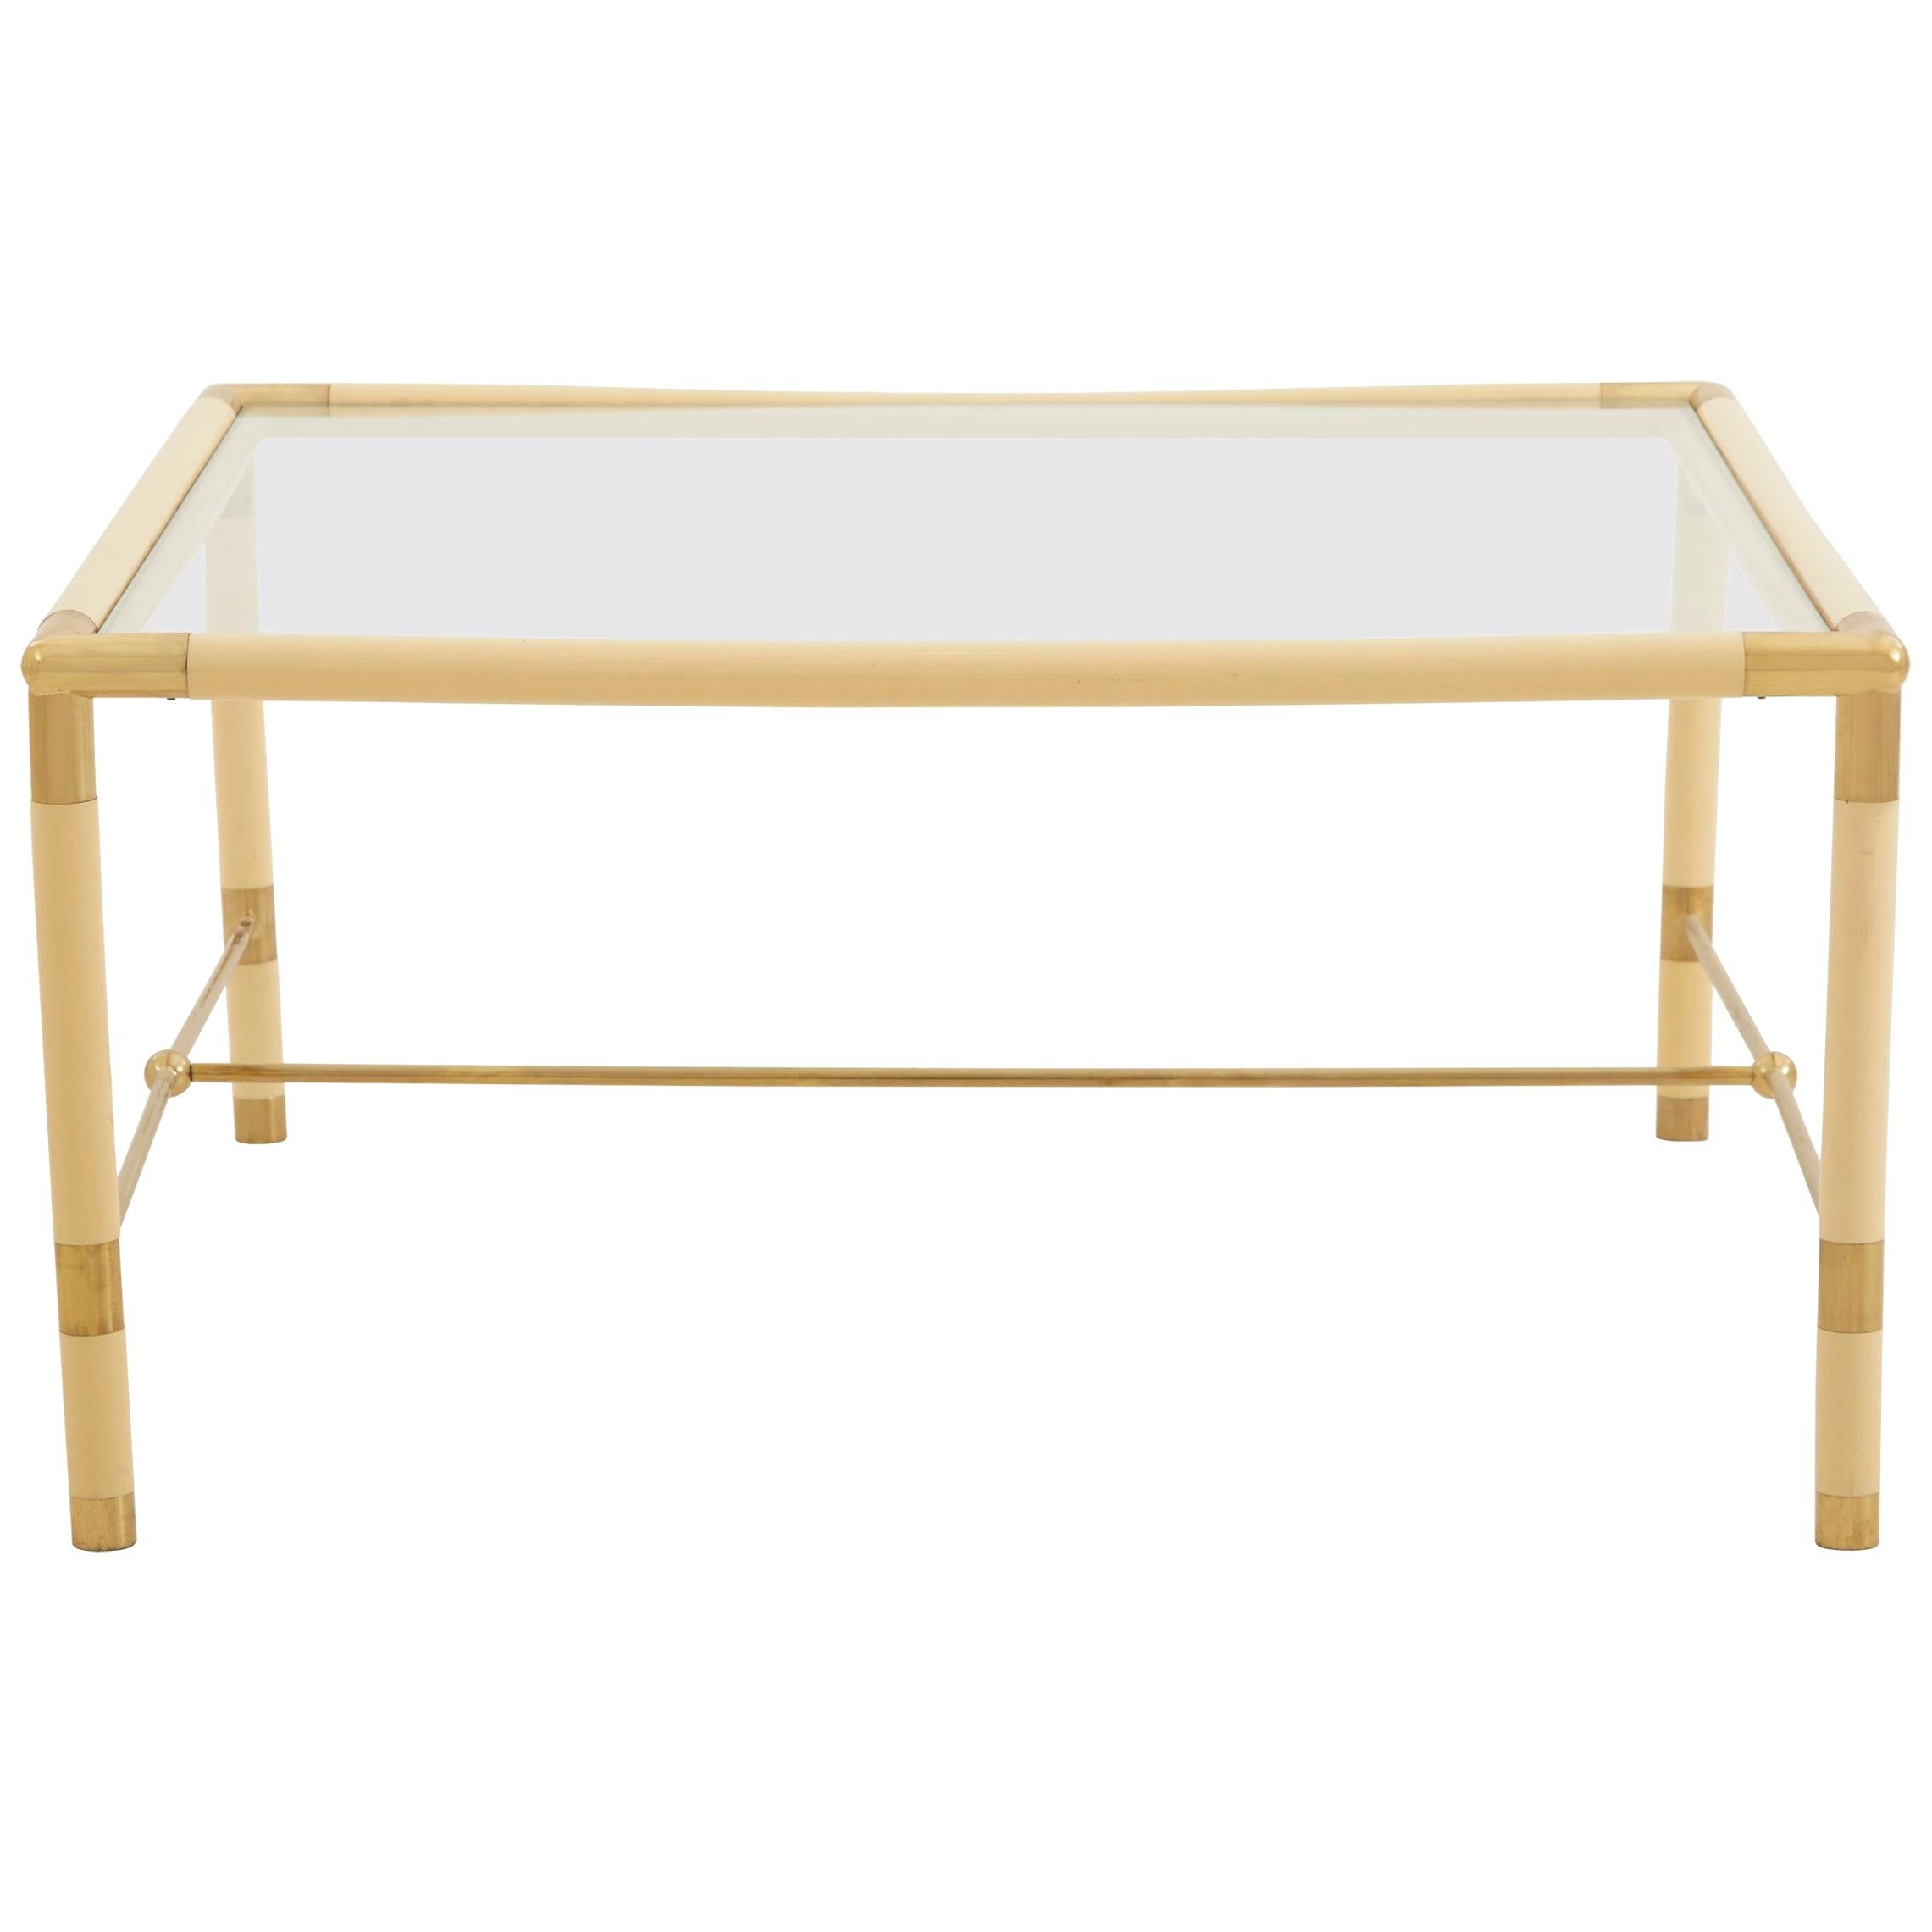 Cream Colored Metal Square Table With Brass Details For Sale